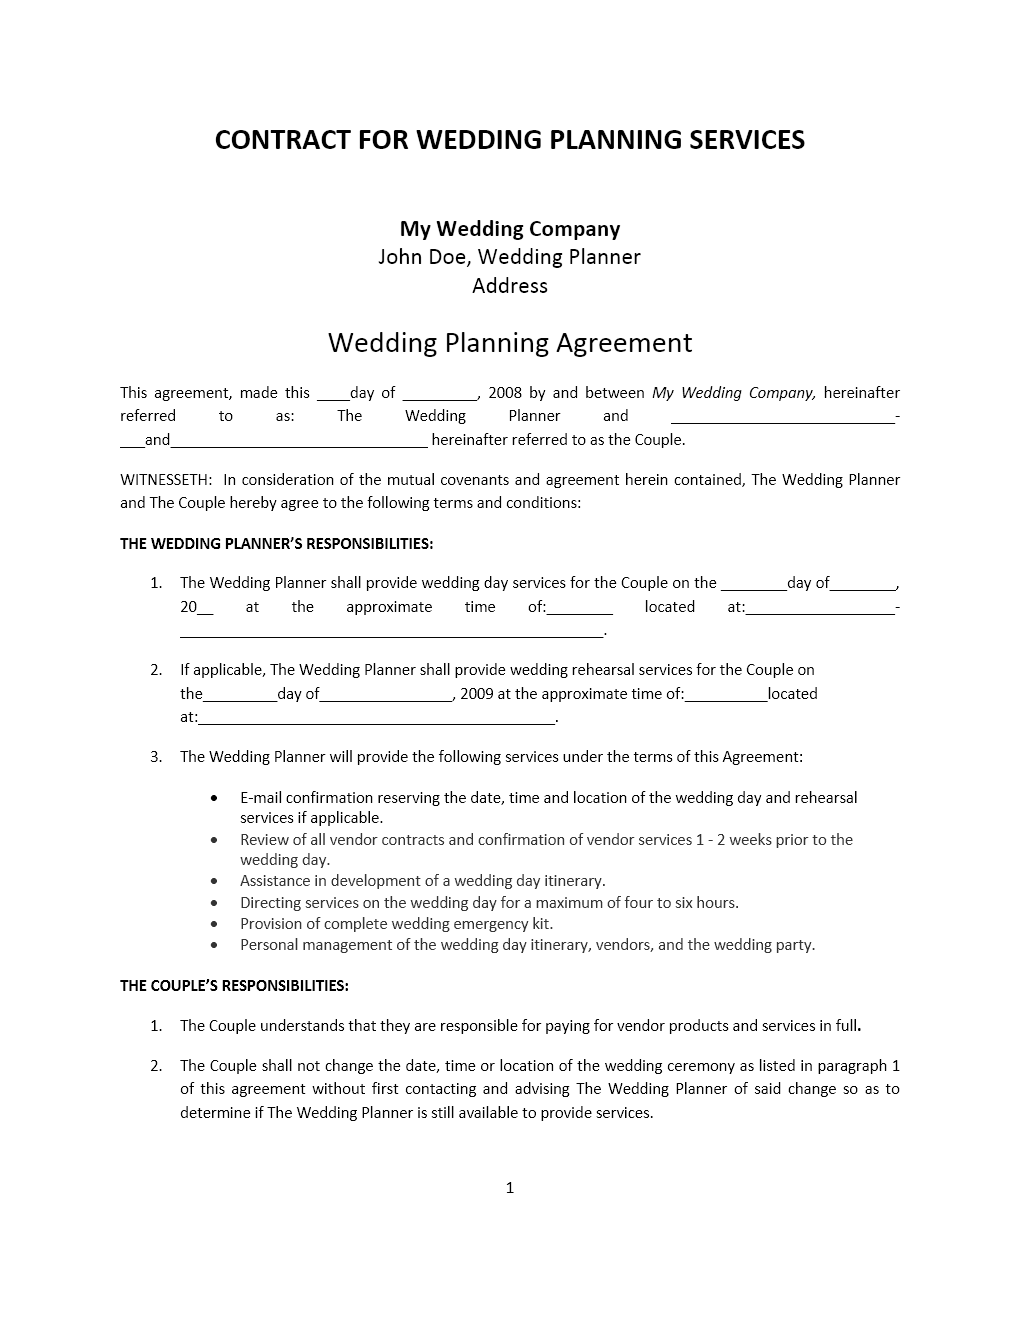 Wedding Planner Contract Grude Interpretomics Co